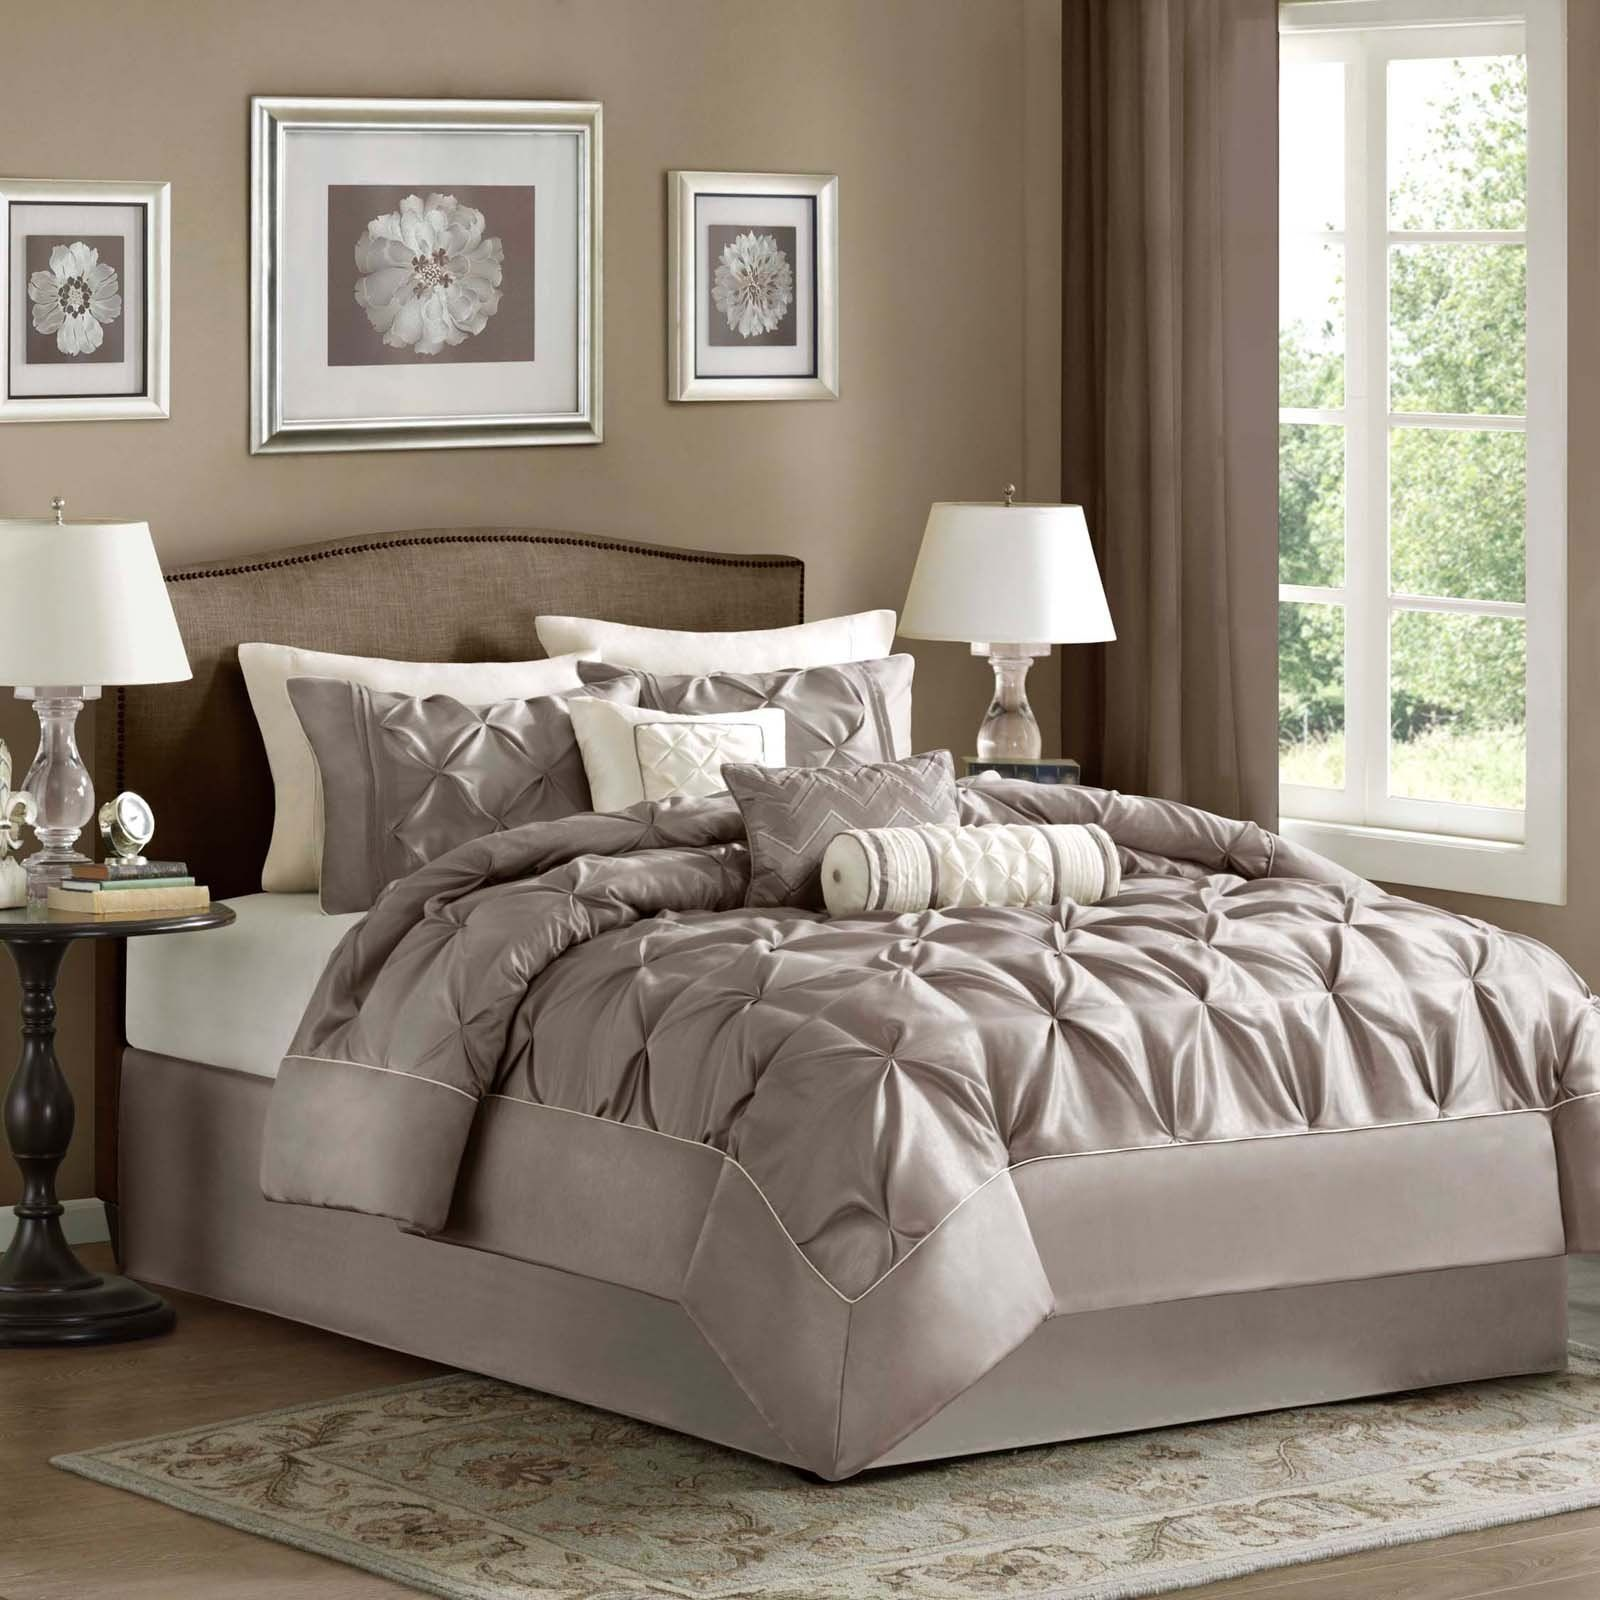 Elegant We Share With You, Lovely Bedding Sets In This Photo Idea